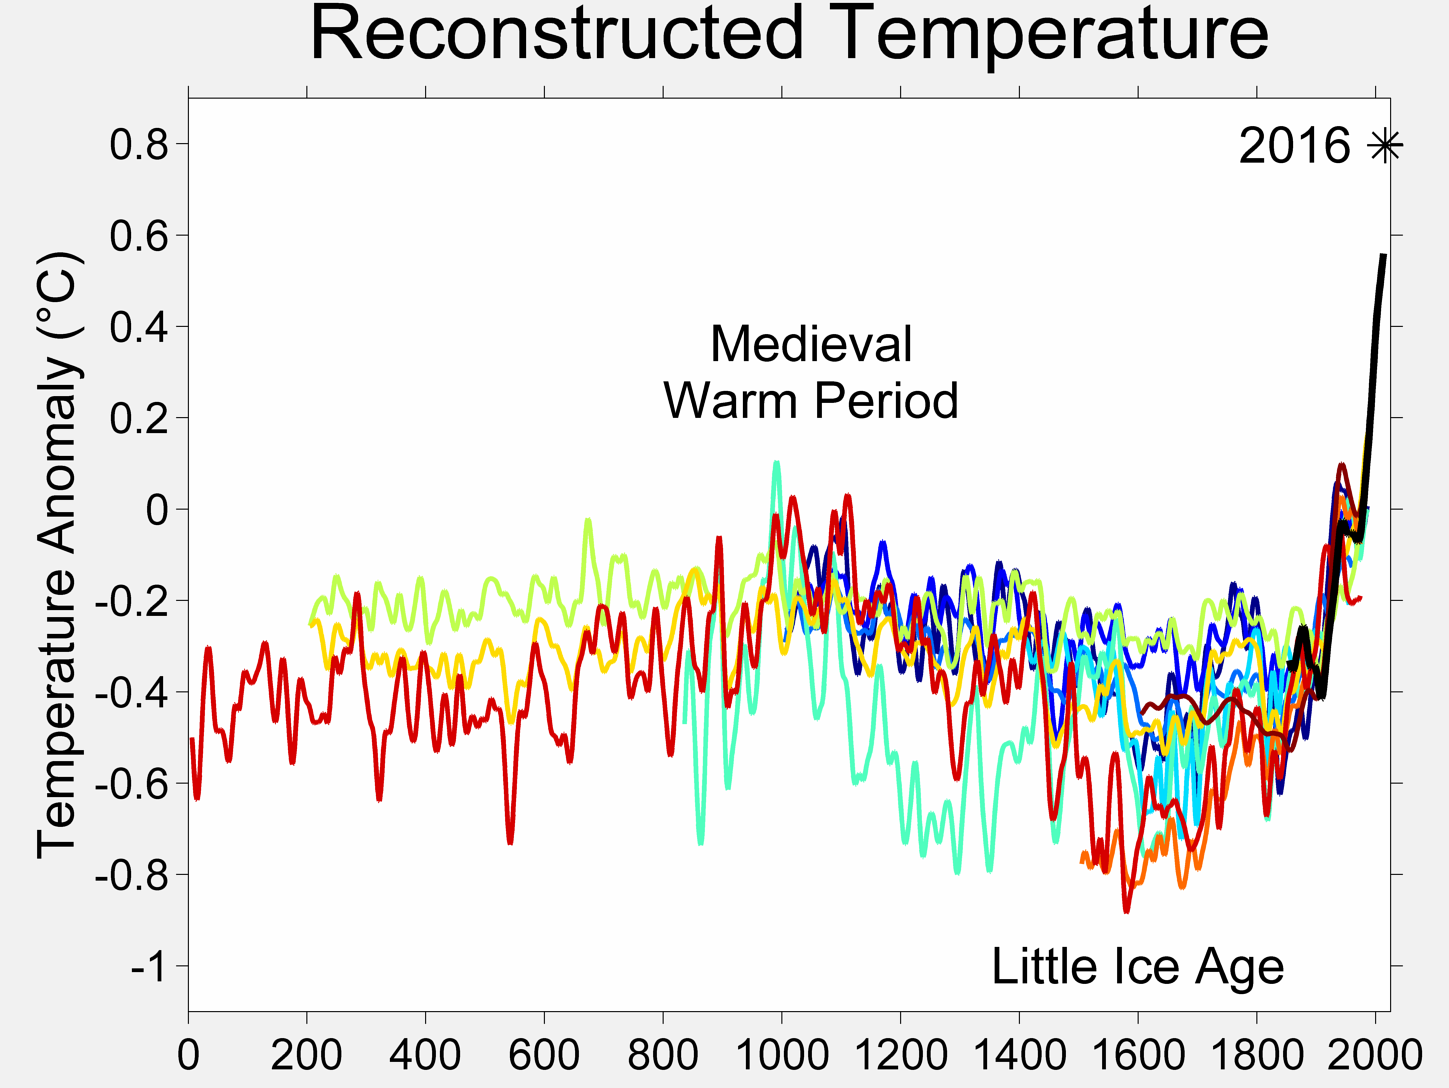 http://upload.wikimedia.org/wikipedia/commons/c/c1/2000_Year_Temperature_Comparison.png